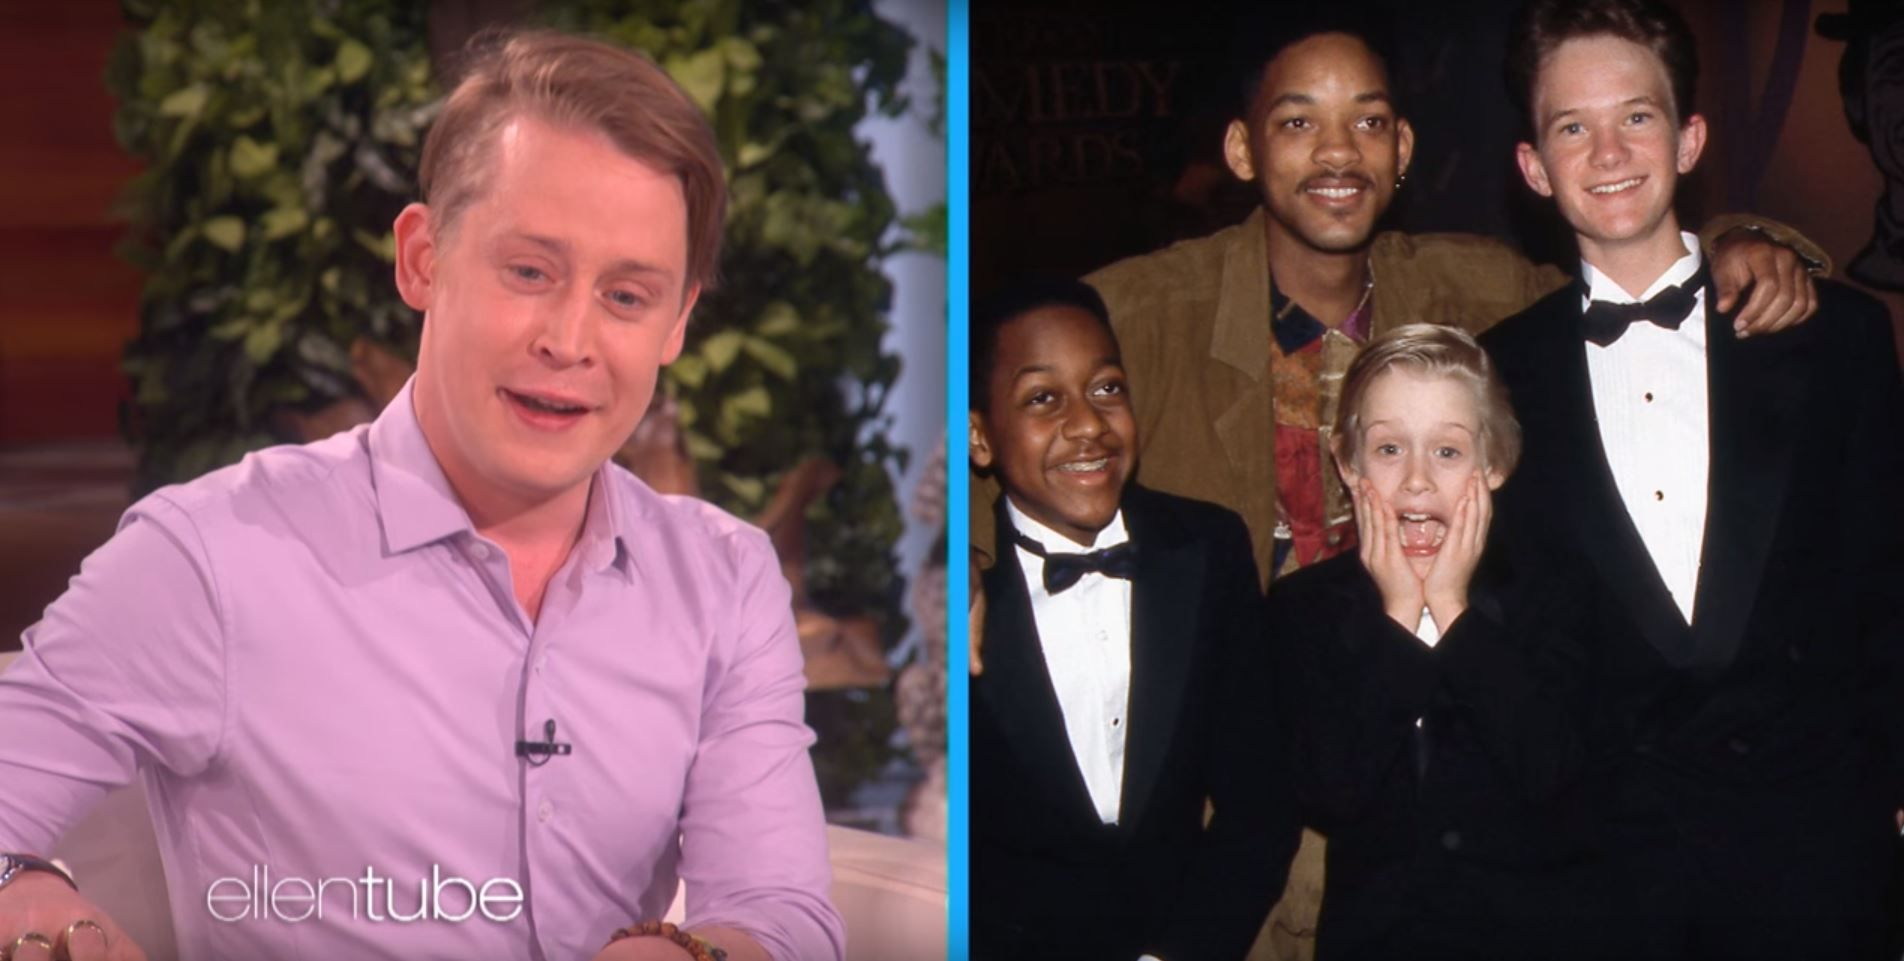 Macaulay Culkin on Ellen